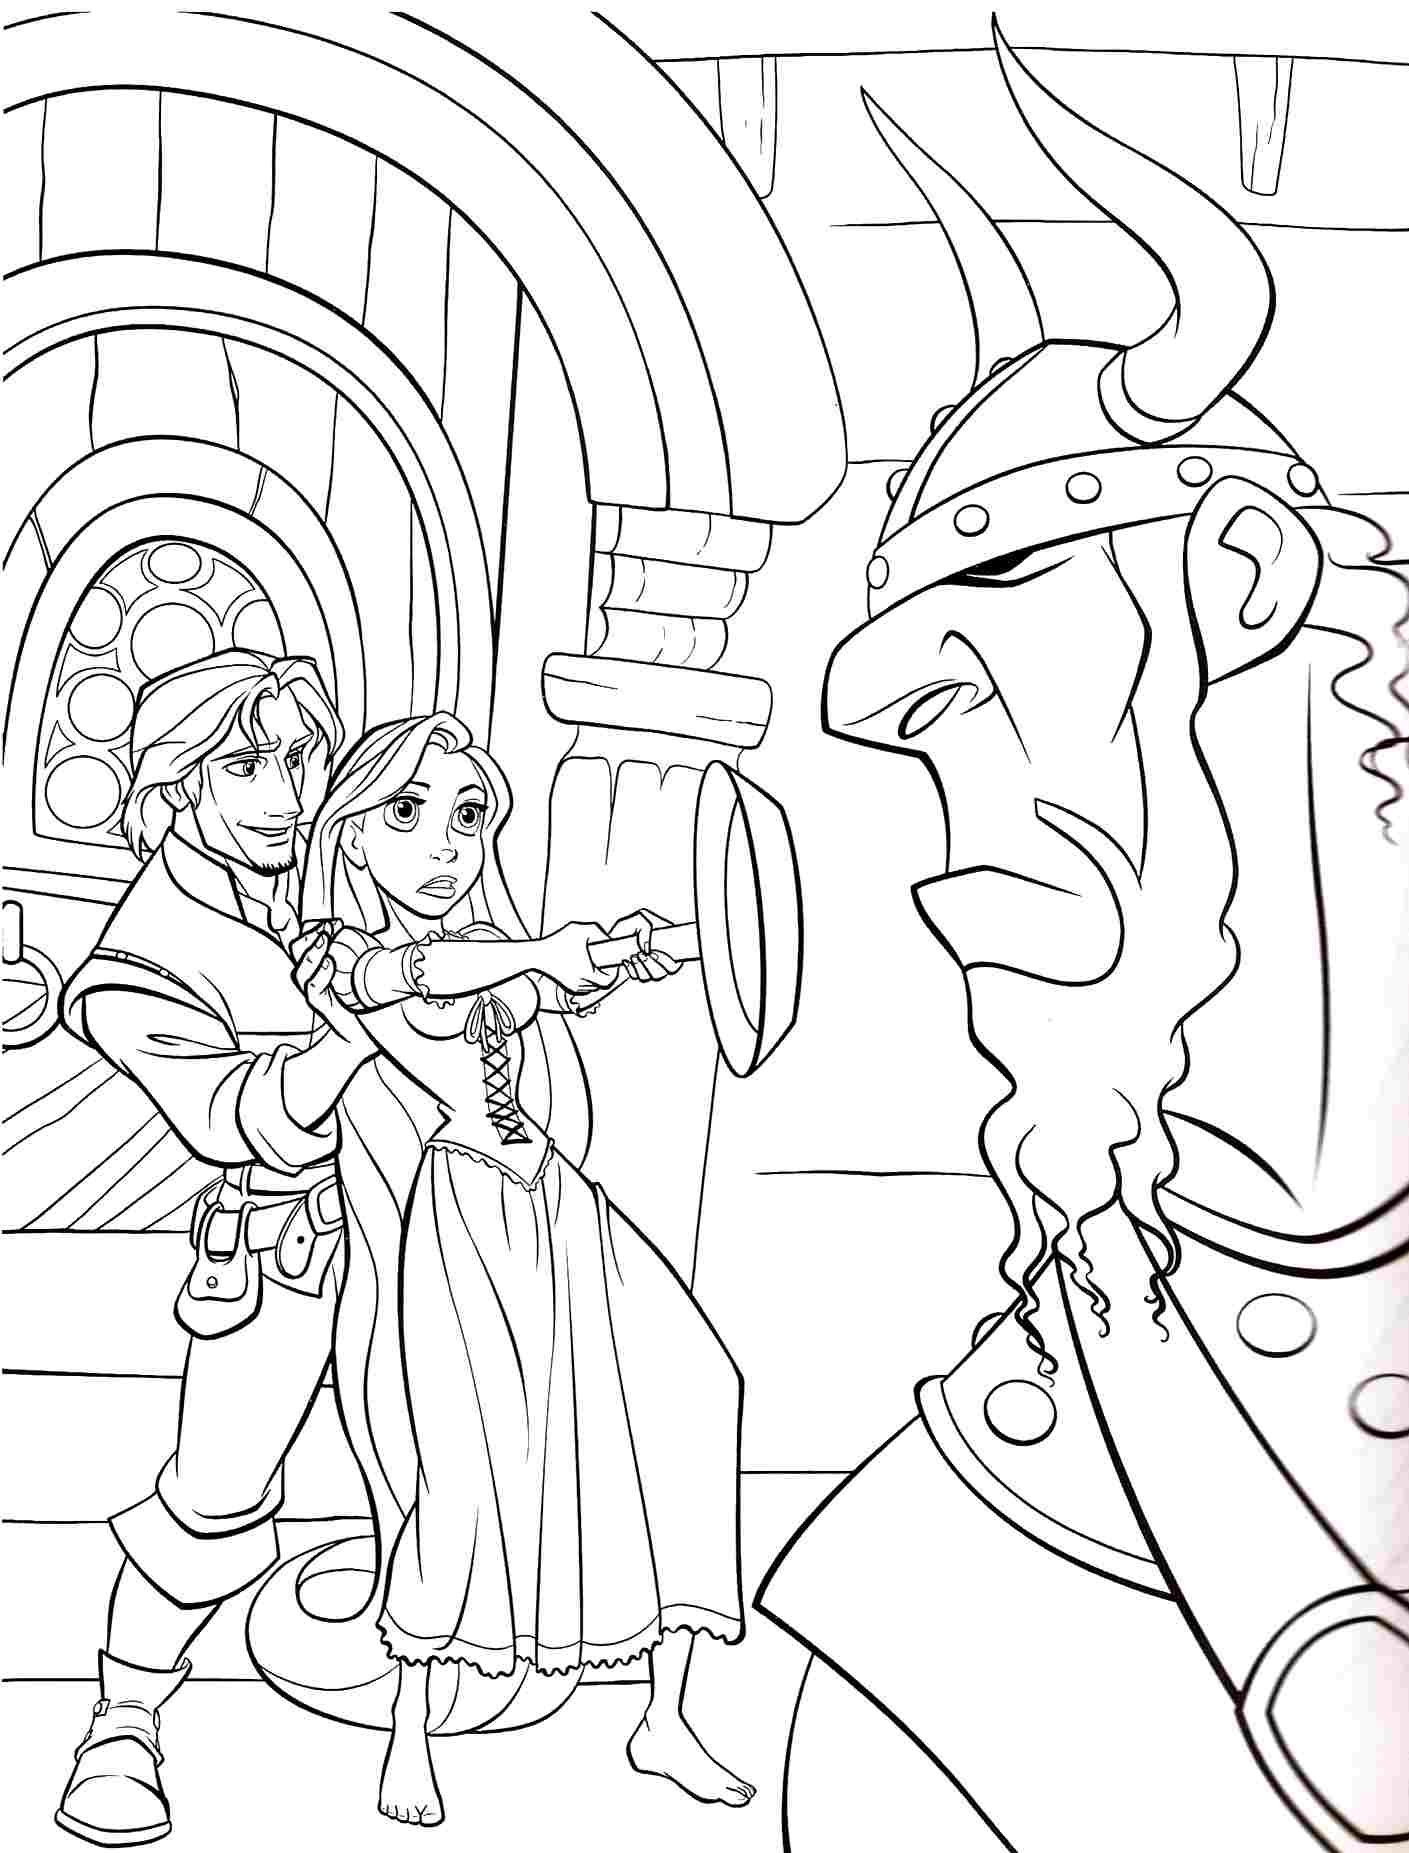 Disney Princess Tangled Rapunzel Coloring Pages Free Printable For Boys Amp Girls